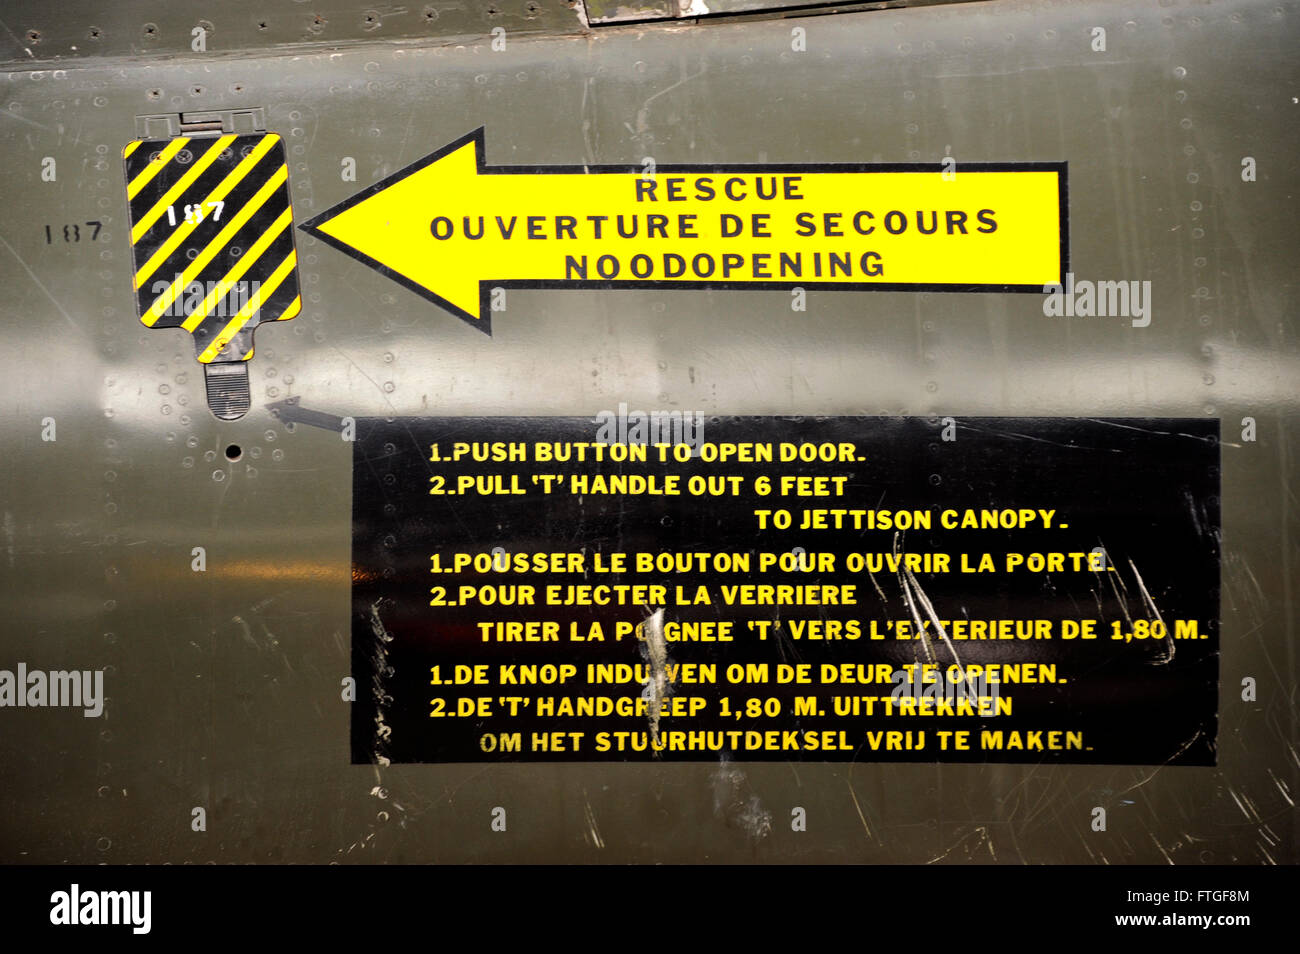 Push To Open Deur Mirage Dassault Royal Museum Of The Armed Forces And Military